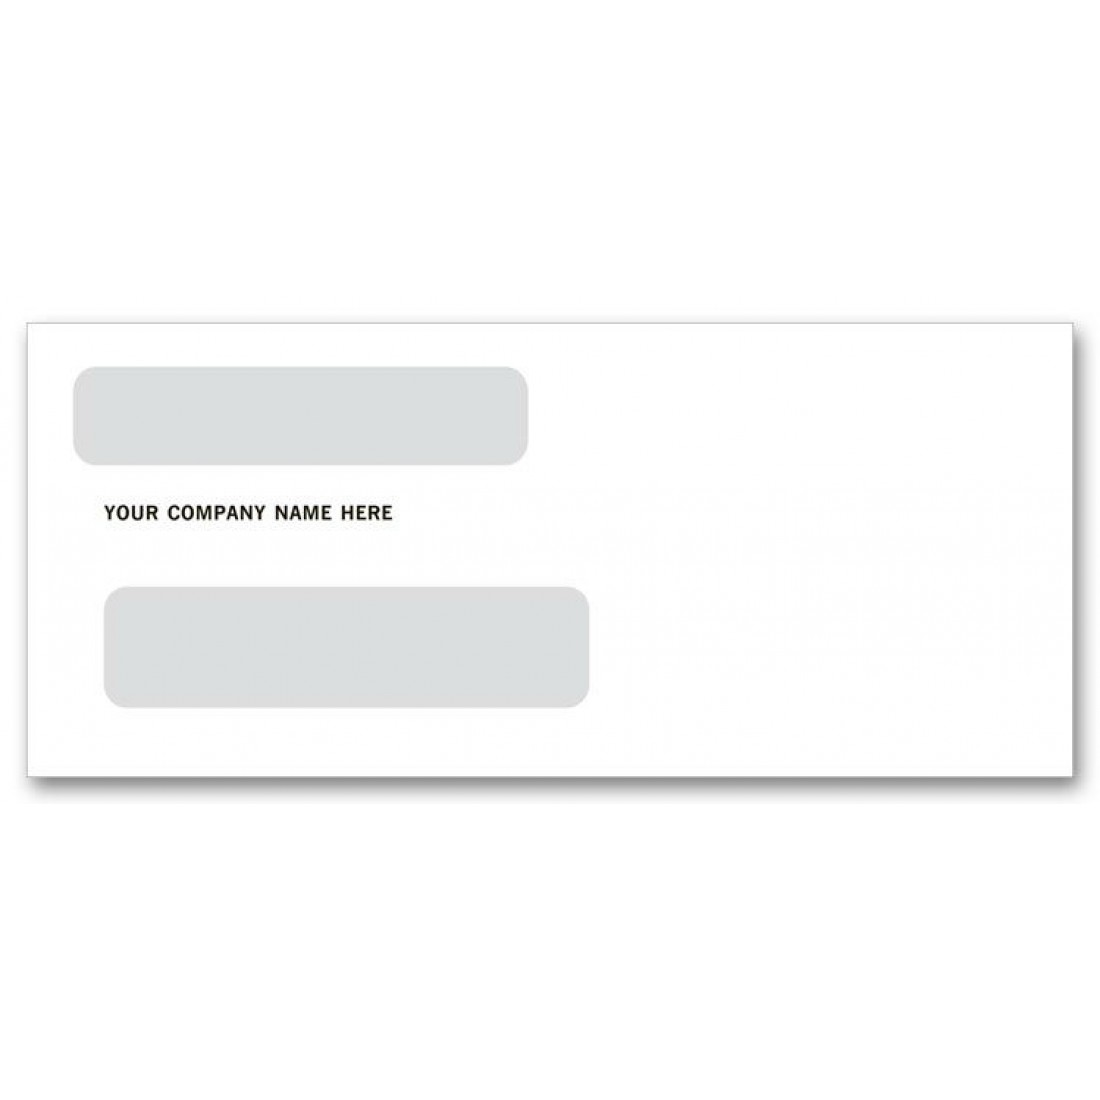 Two window envelopes for checks free shipping for 2 window envelope